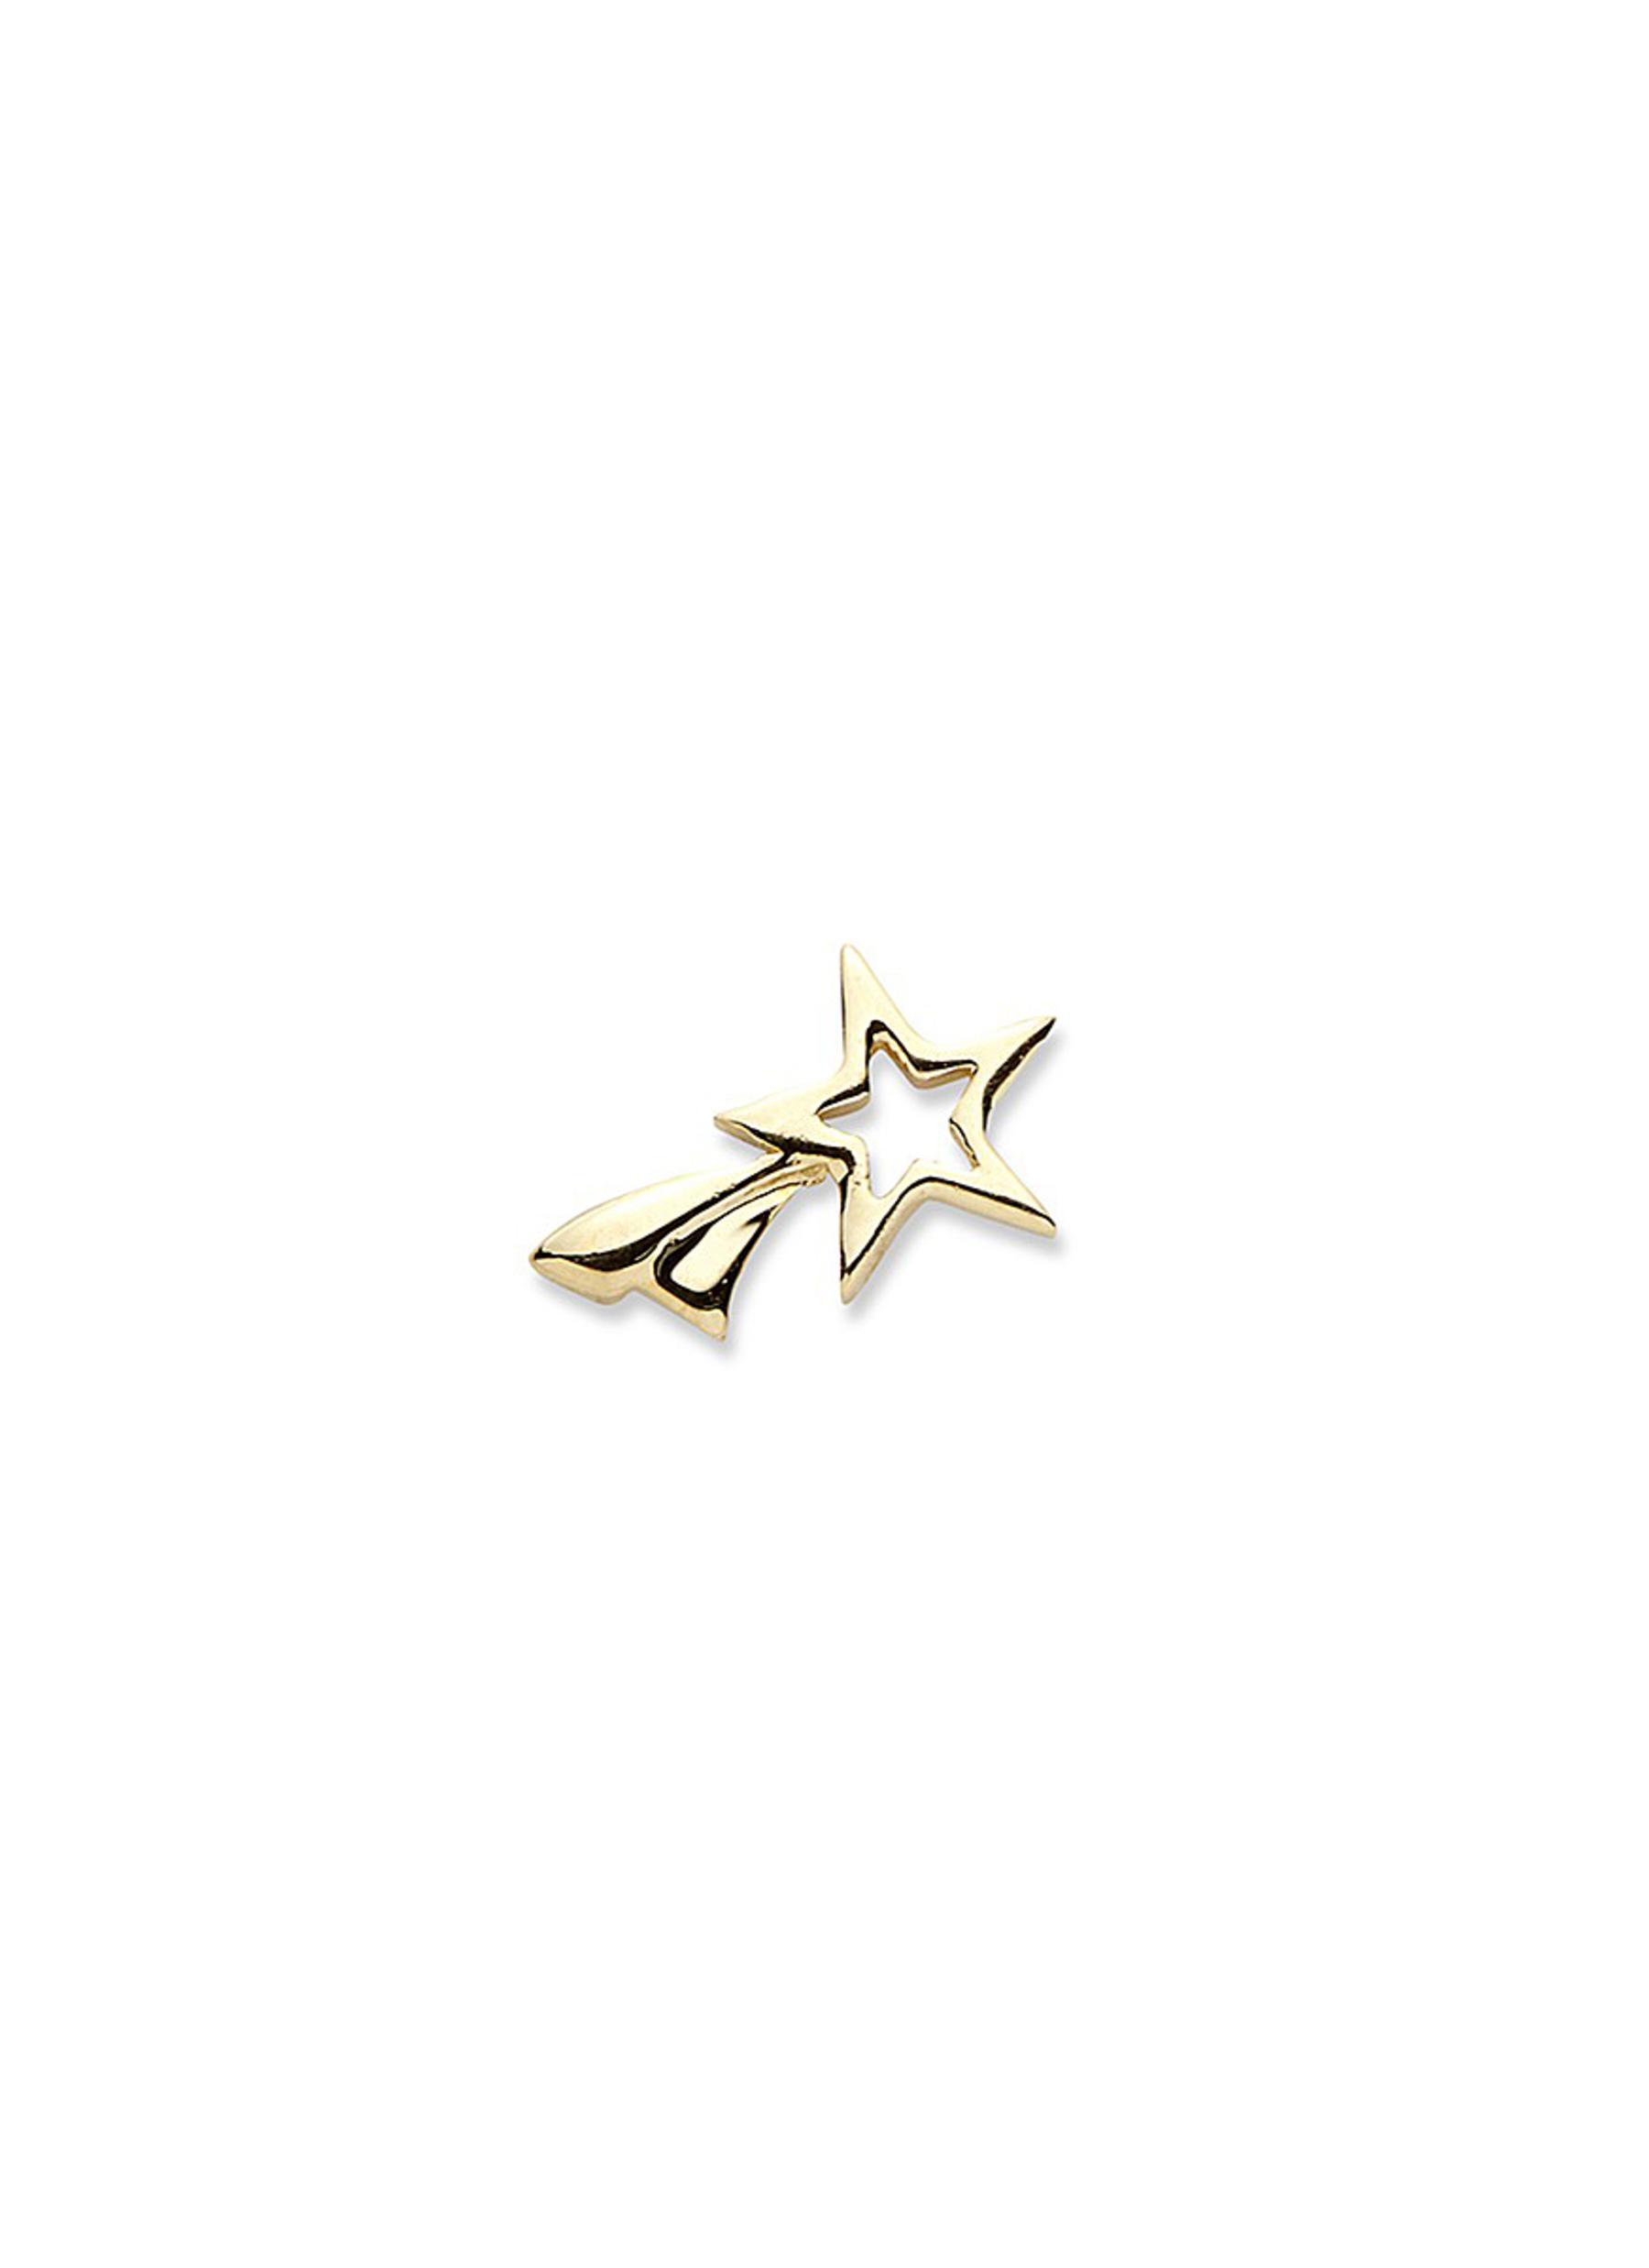 LOQUET LONDON 14k yellow gold shooting star single earring - Make a Wish